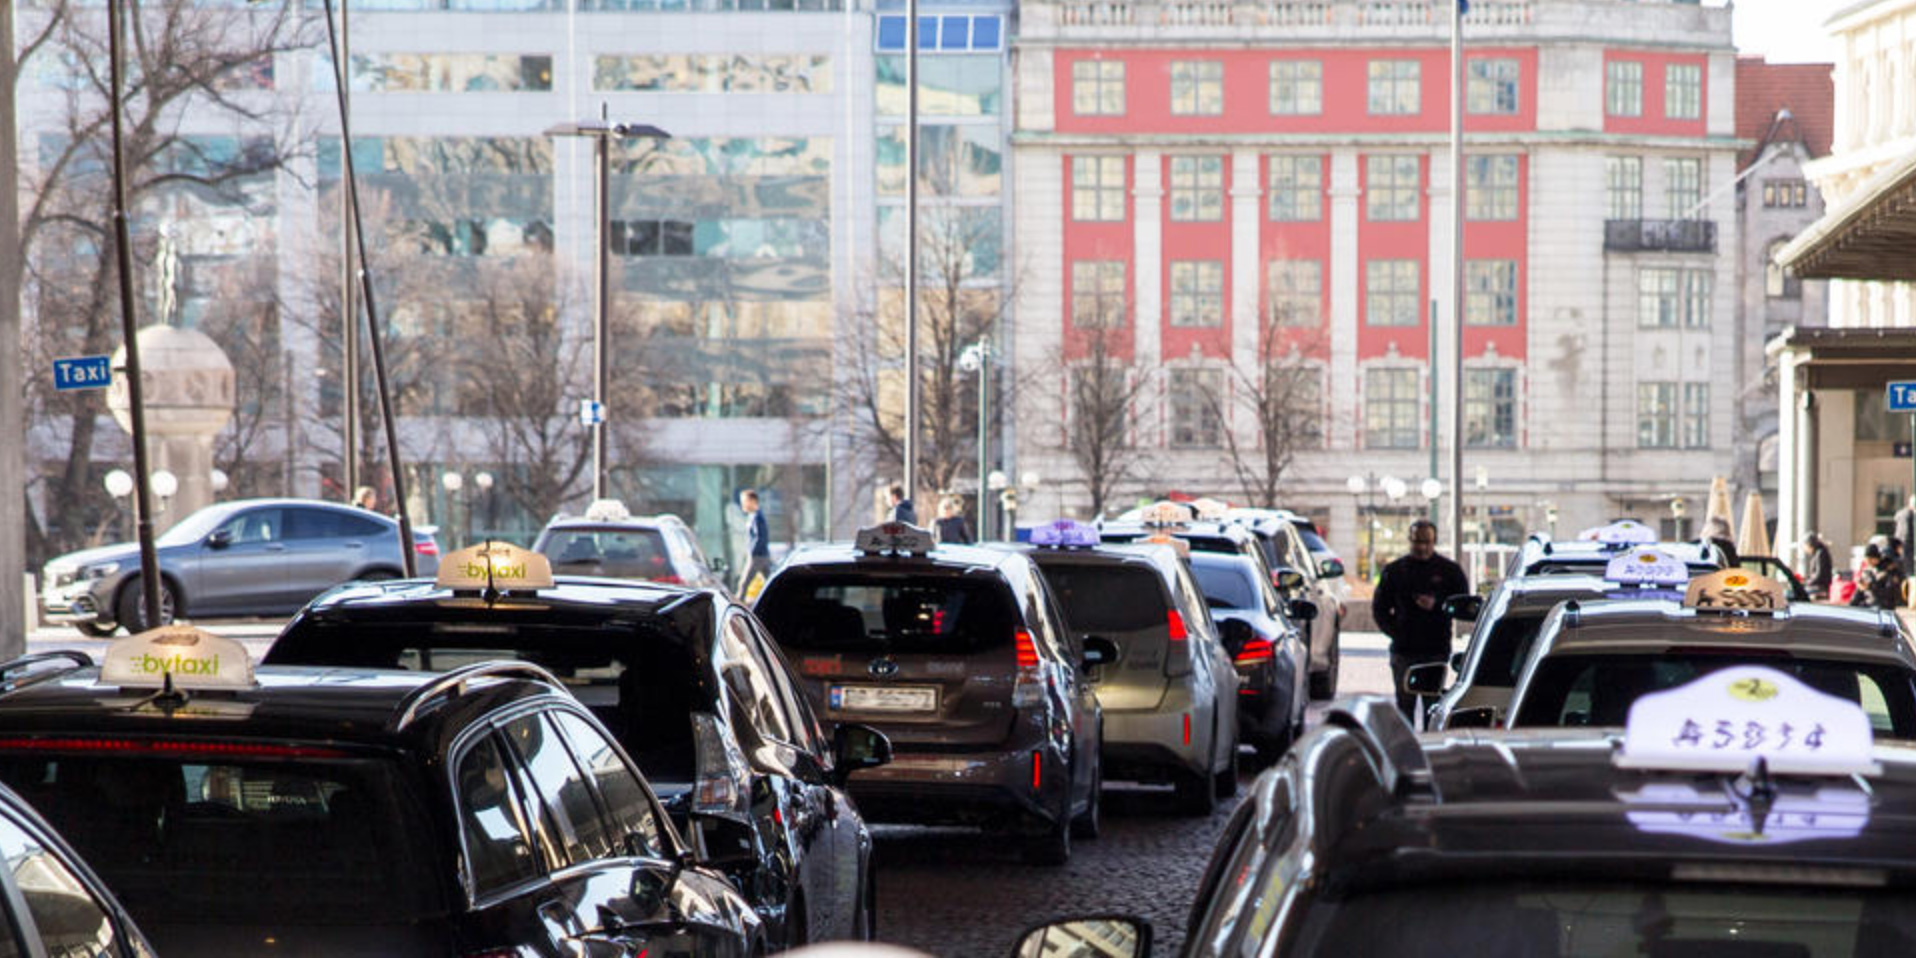 Oslo to become first city with wireless charging infrastructure for electric taxis